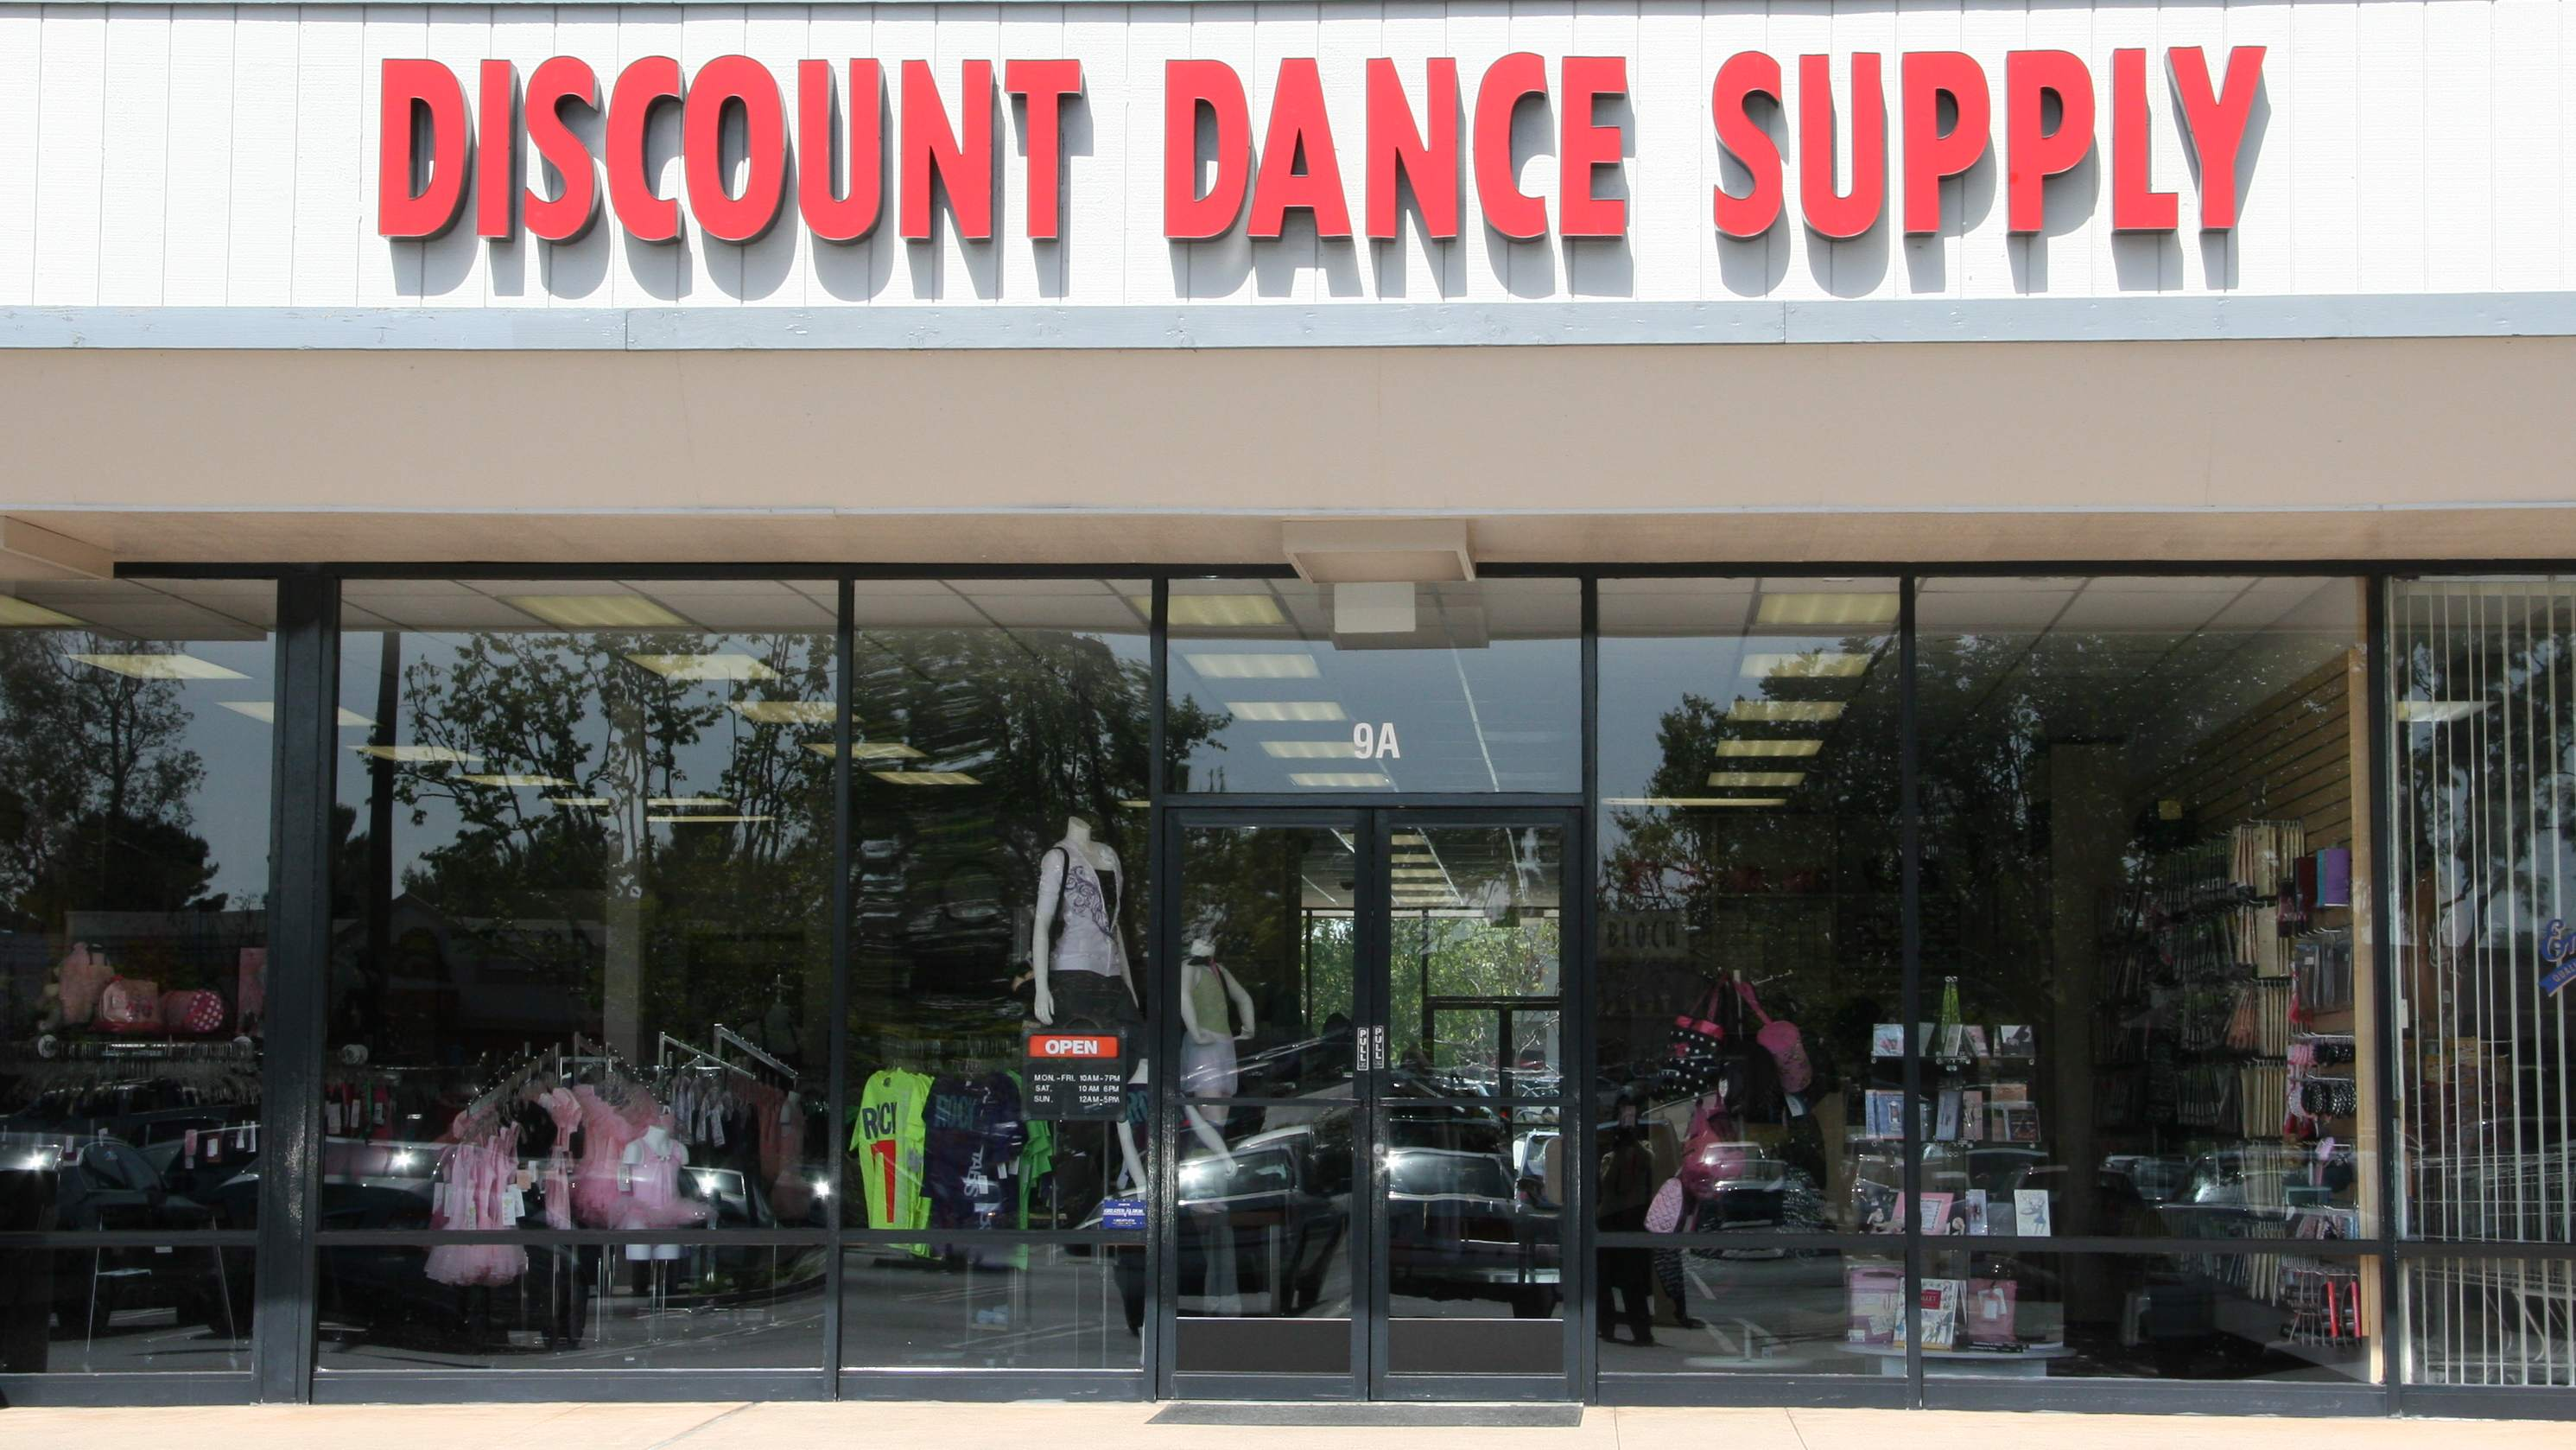 Discount Dance storefront